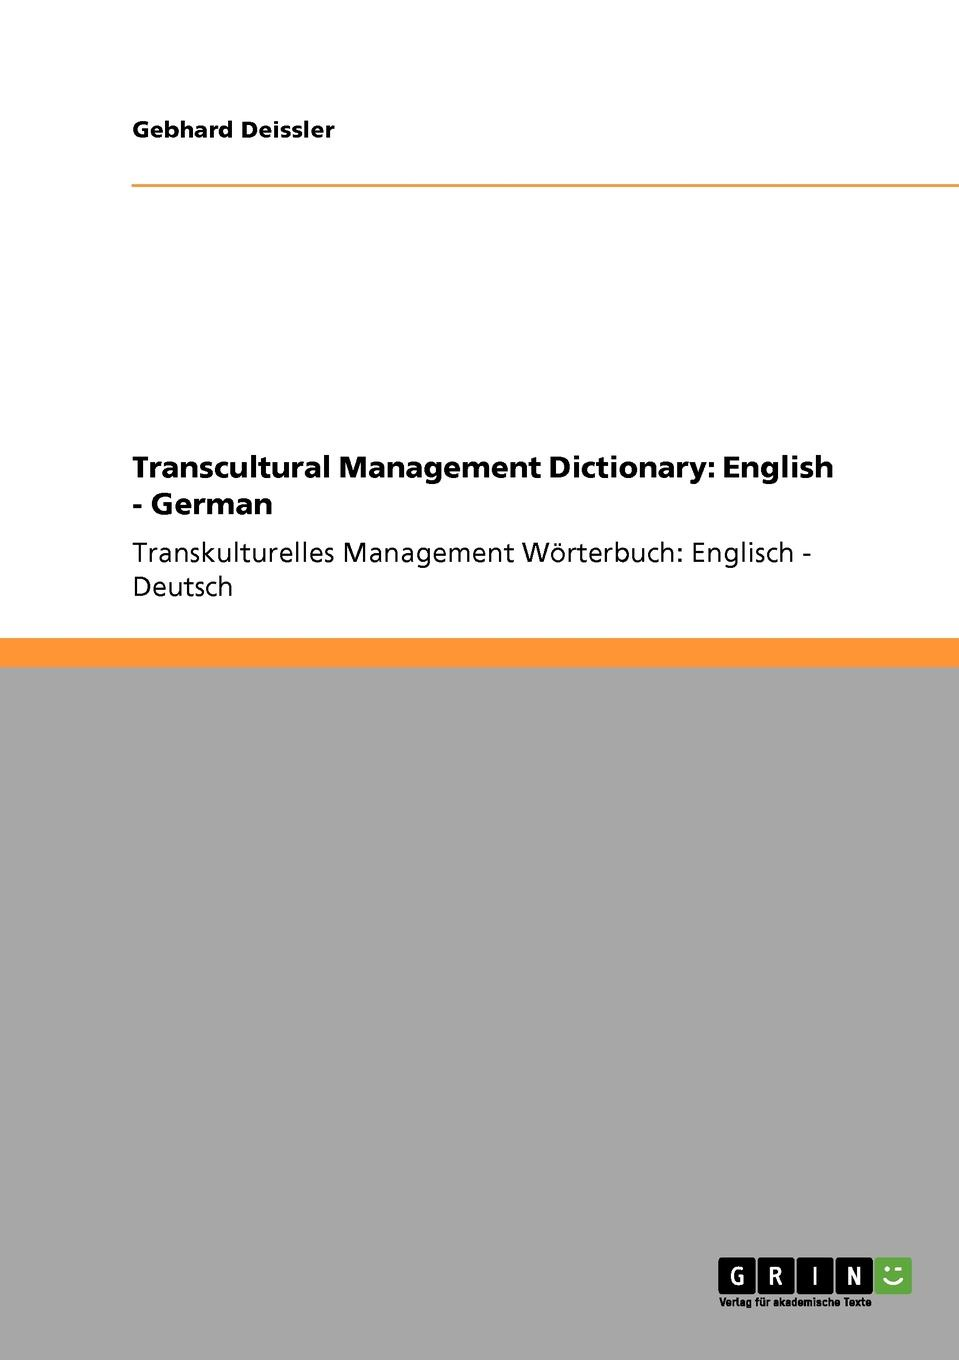 Gebhard Deissler Transcultural Management Dictionary. English - German andreas hepp transcultural communication